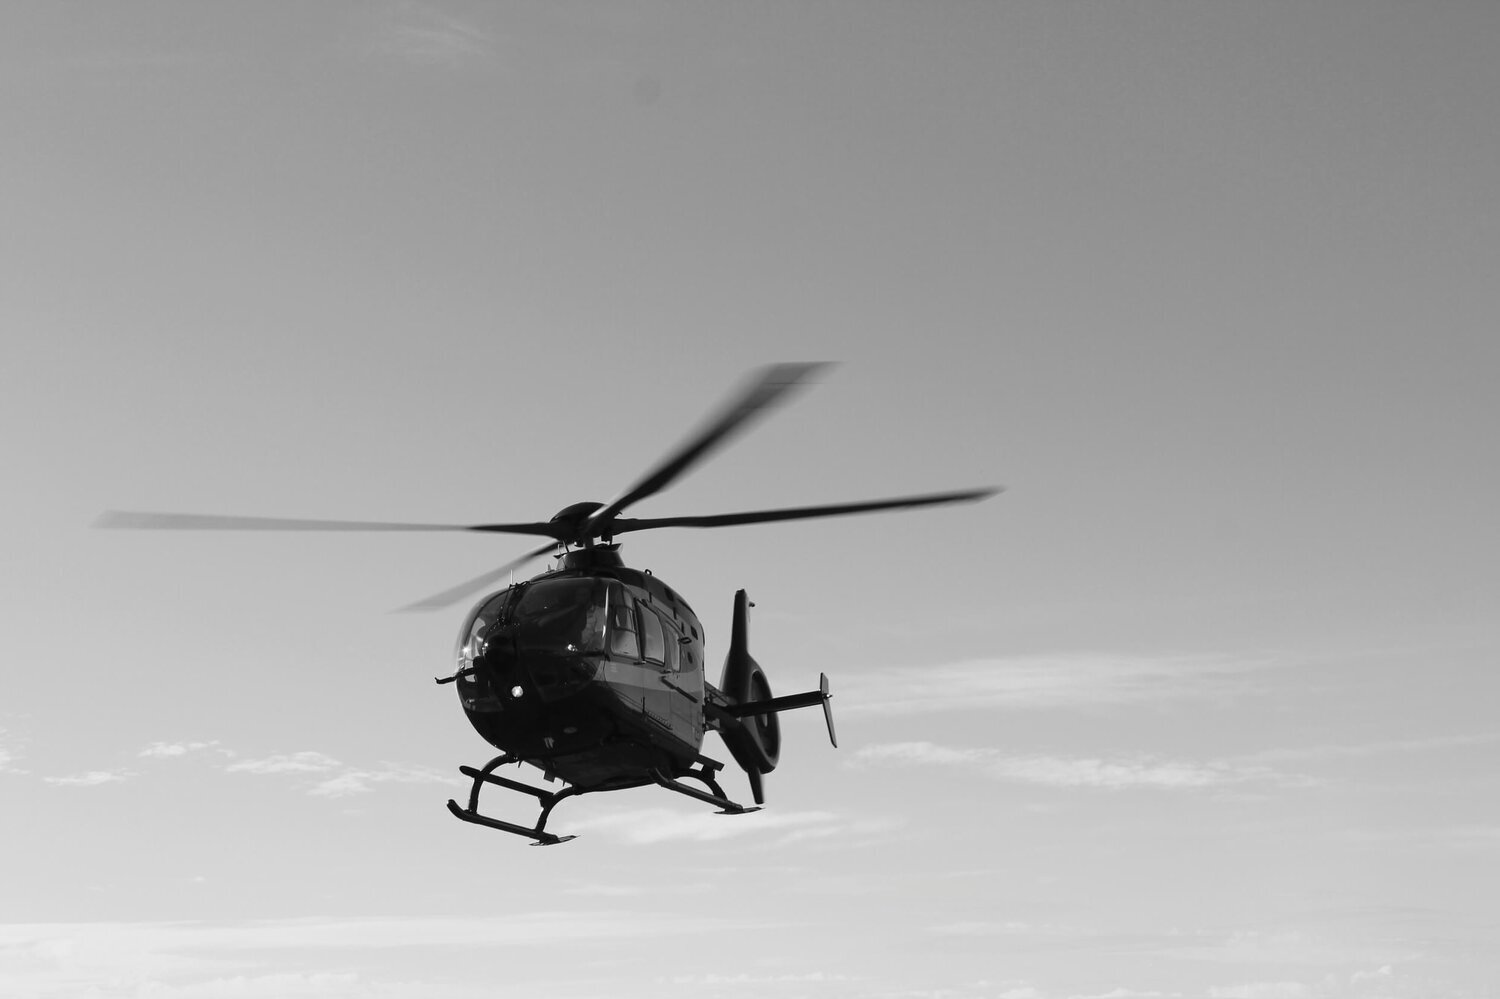 Helicopter Services - Clients can unlock access to remote areas that are the gateways to adventure, or utilise downtown helipads to transfer into urban centers with ease.